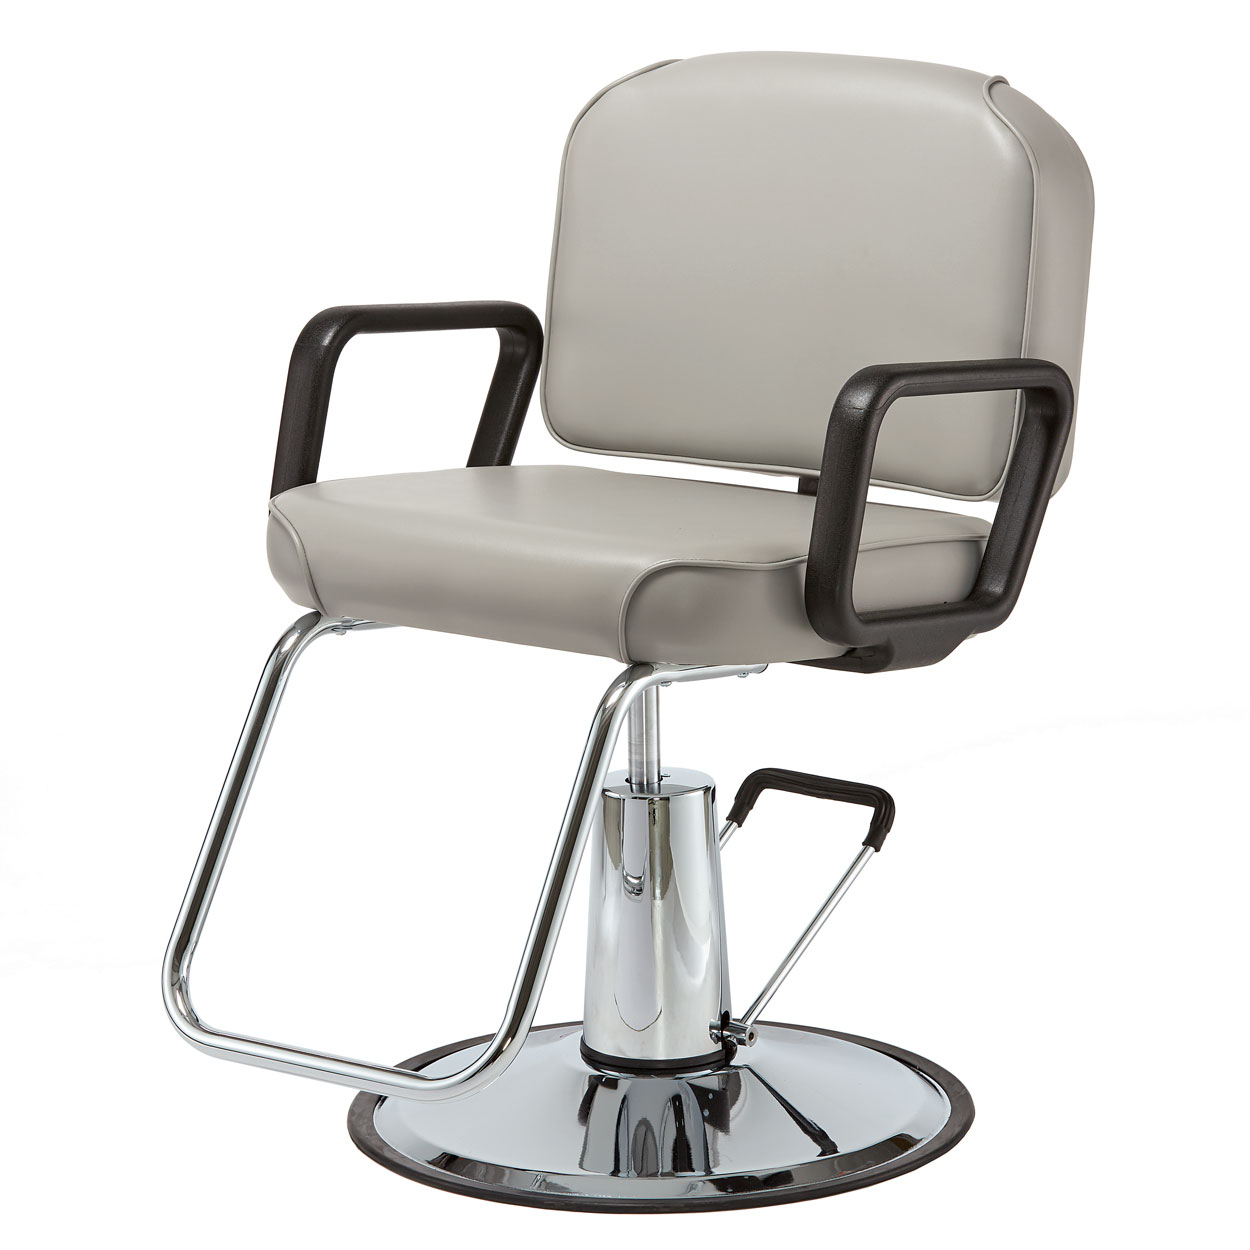 Pibbs 4306 Lambada Hair Styling Chair with Square Arms  main product image